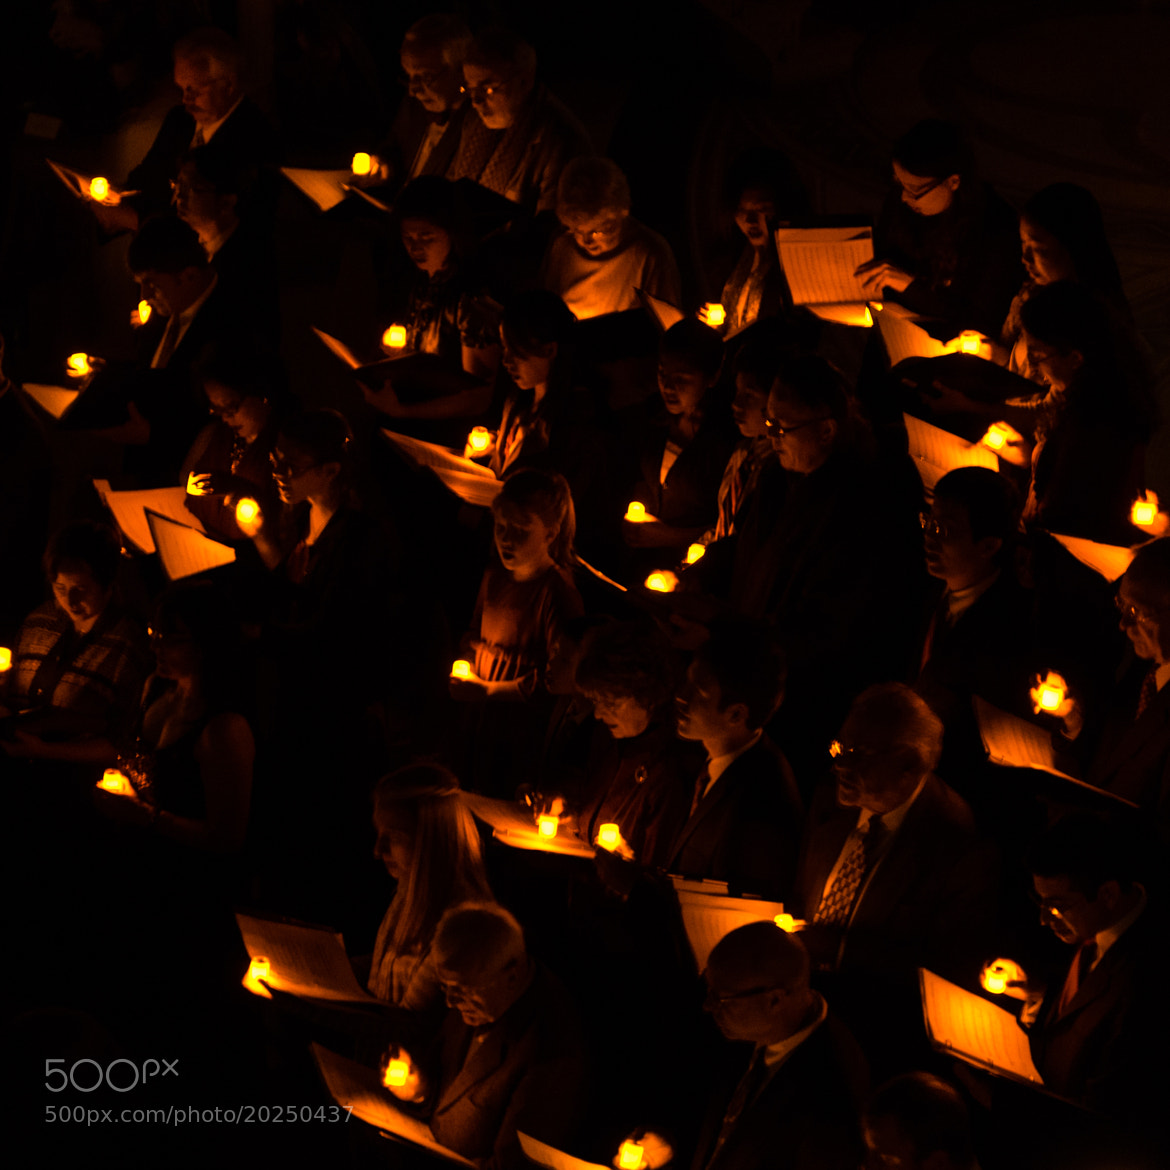 Photograph Early Holiday Liturgy by Ben Eloy on 500px